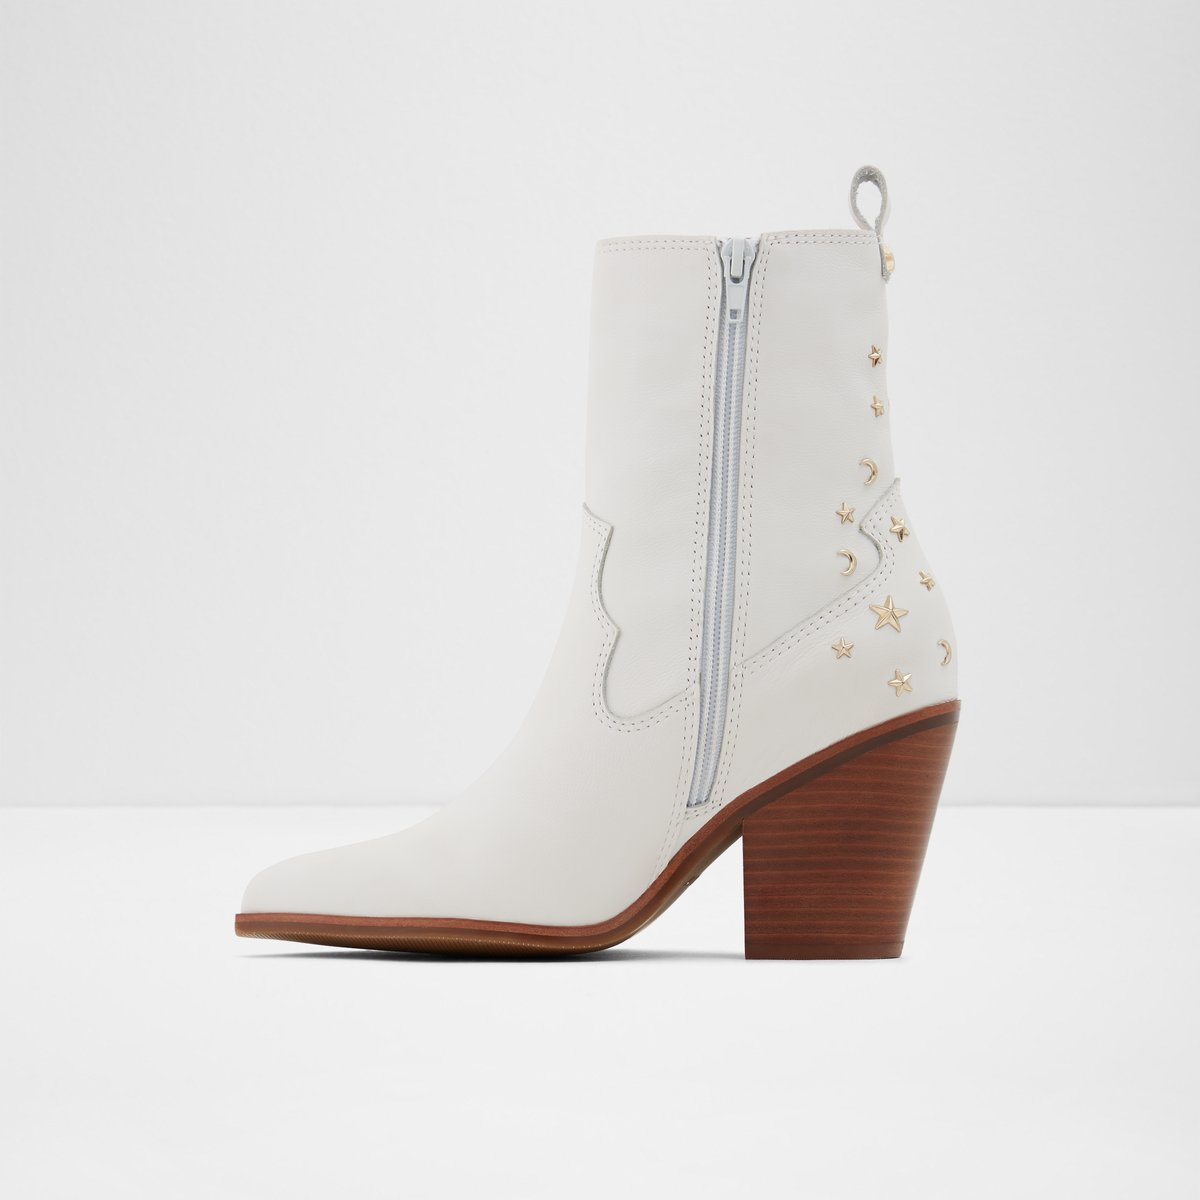 Sophie rose White Women's Ankle Boots